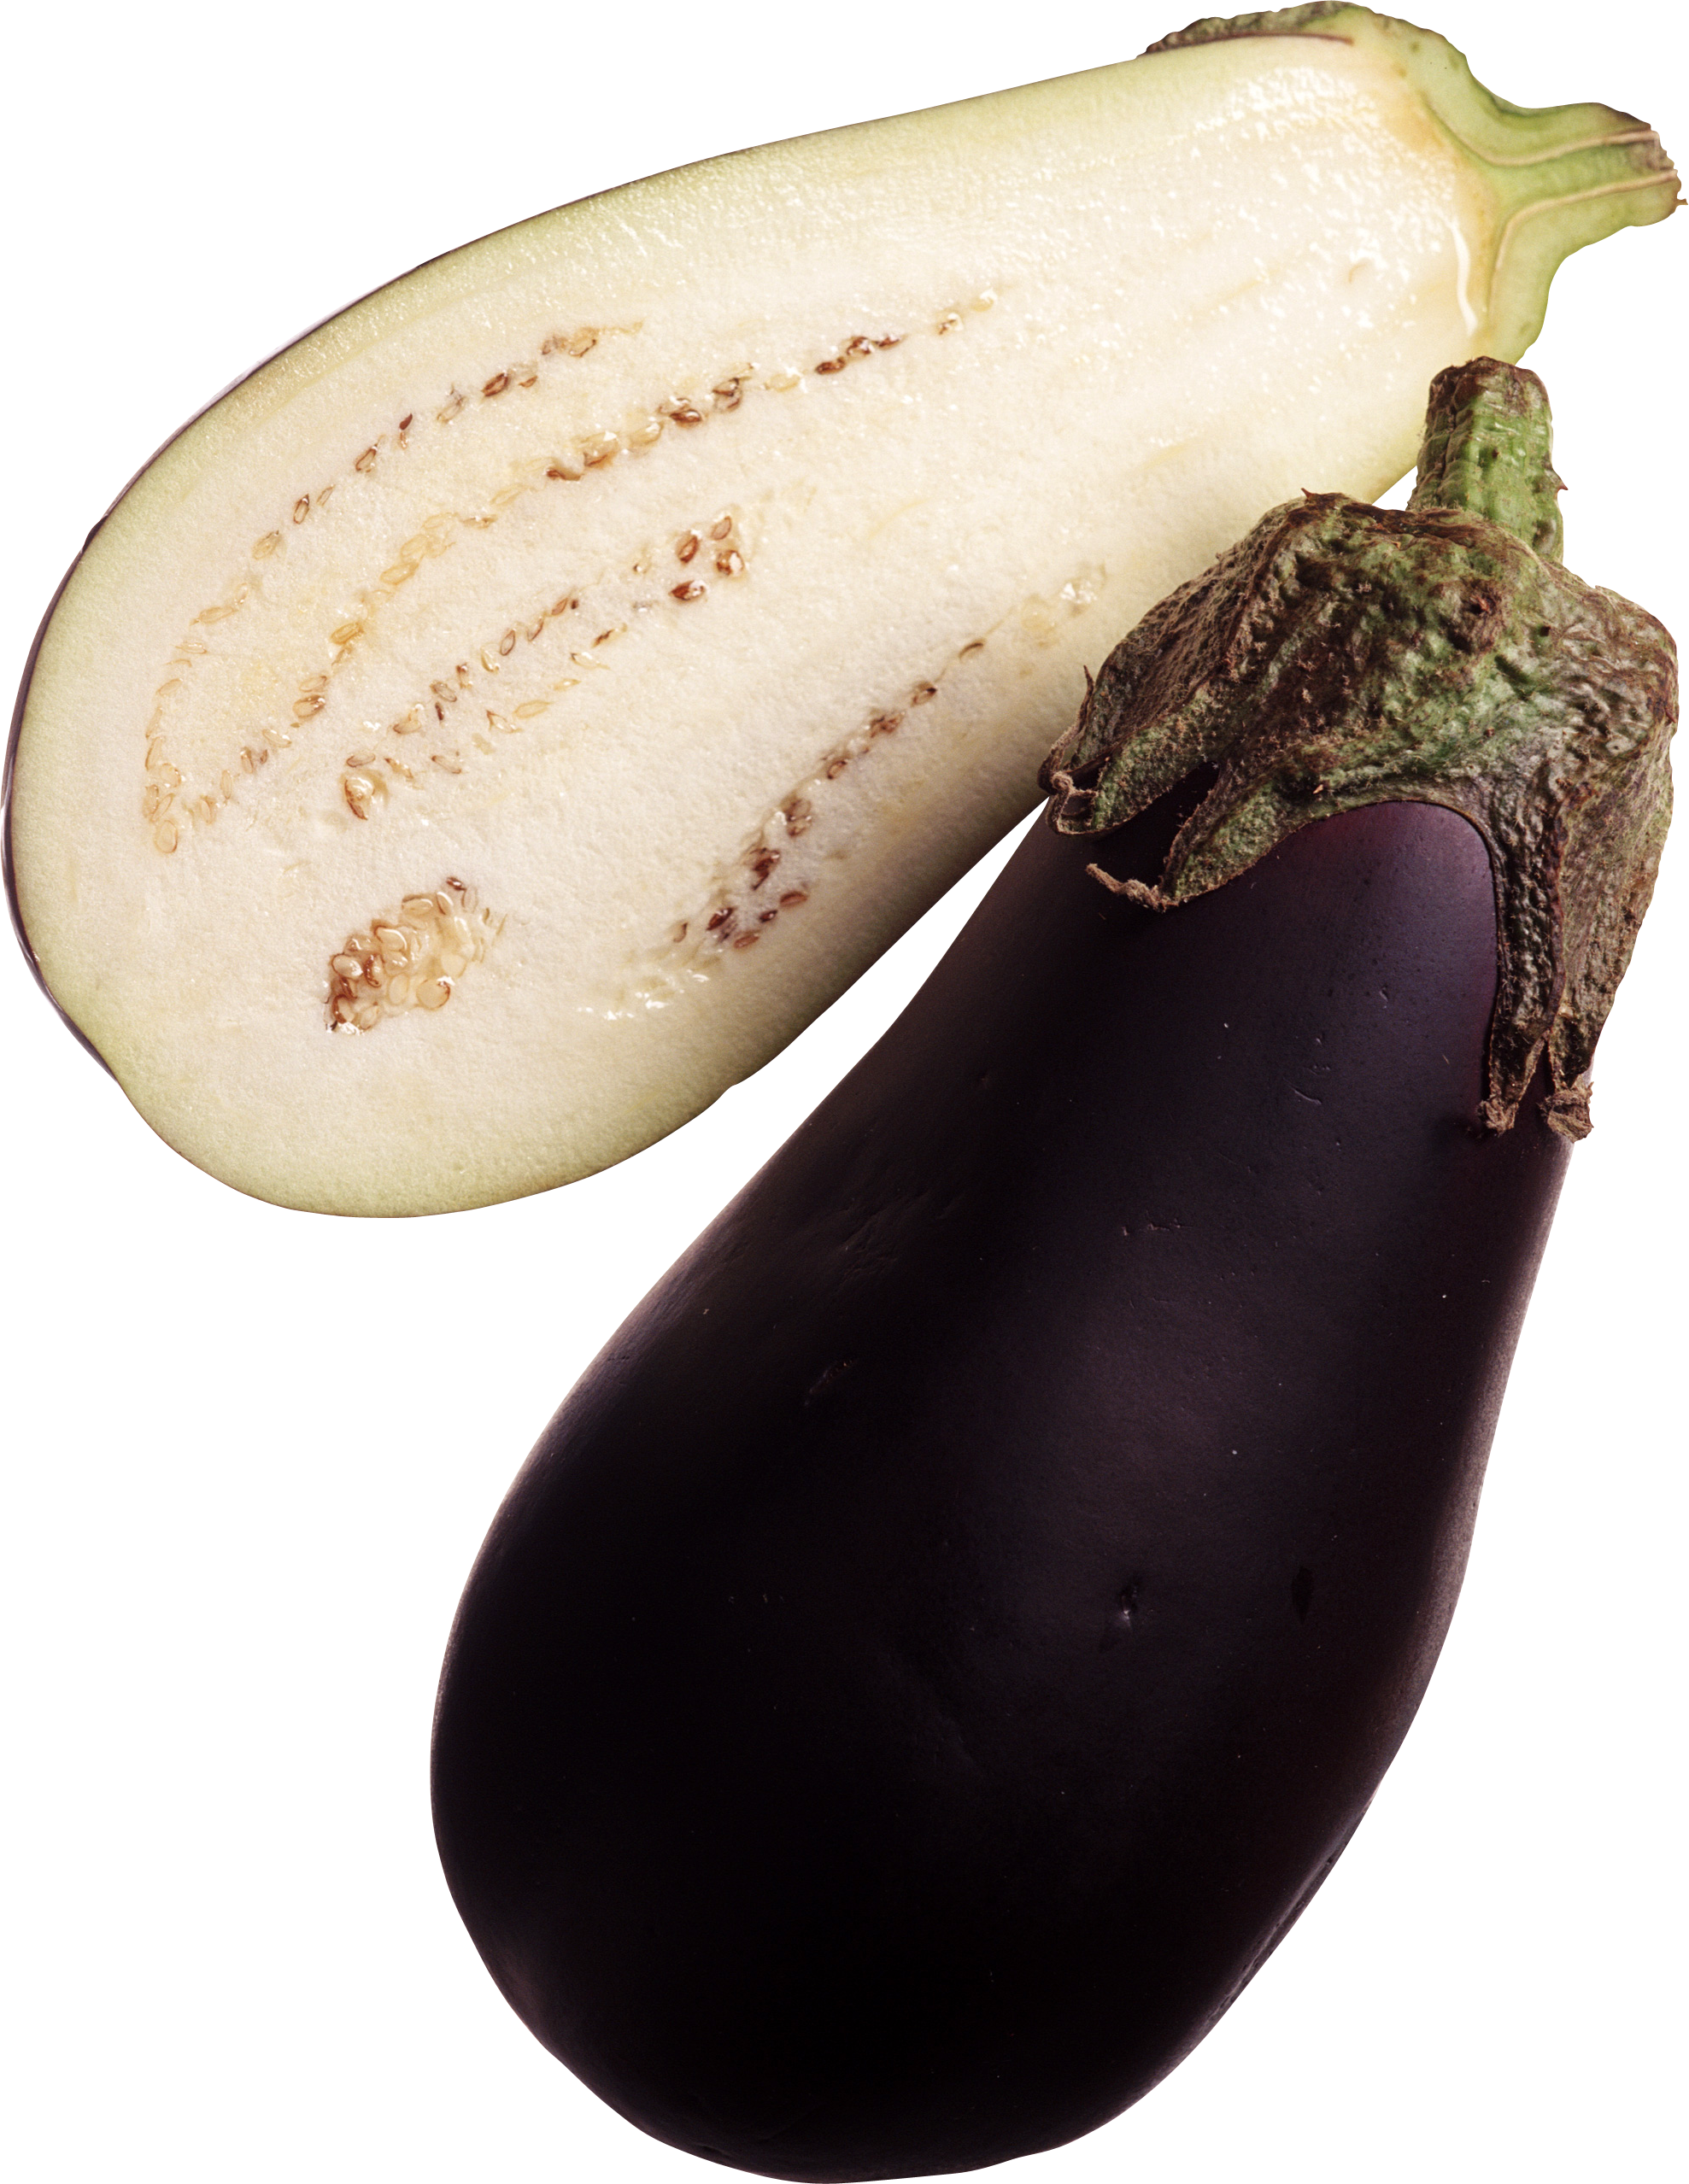 Garden clipart eggplant. Png images free download